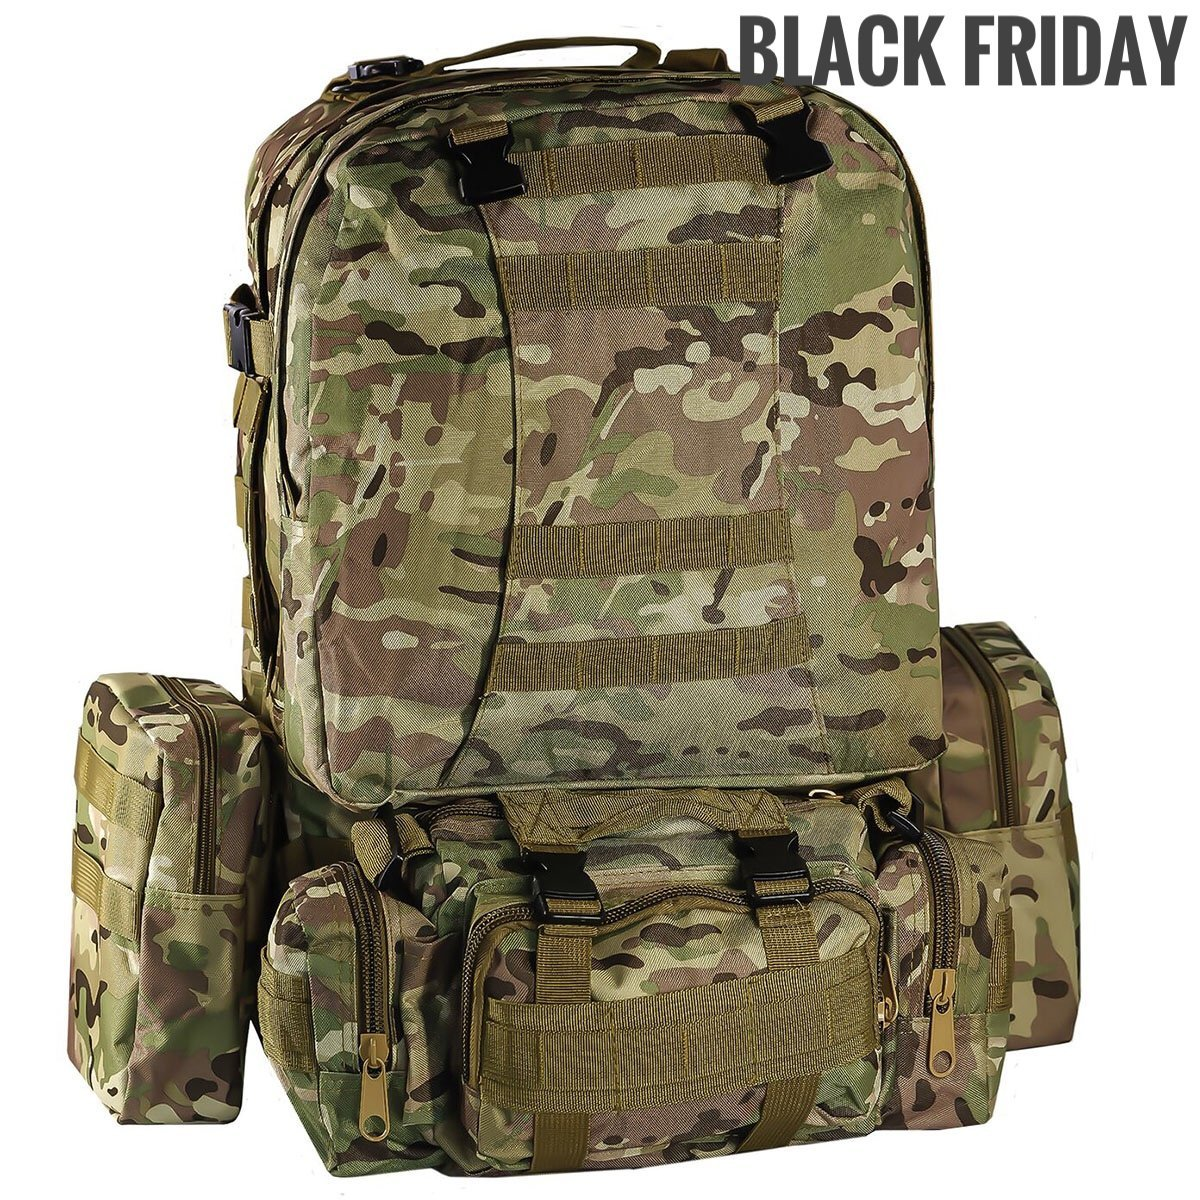 2f7b7f153147 Get Quotations · Military Tactical backpack Camouflage large Military  Backpack molle Assault Pack 50L waterproof 3 day Combat Backpack